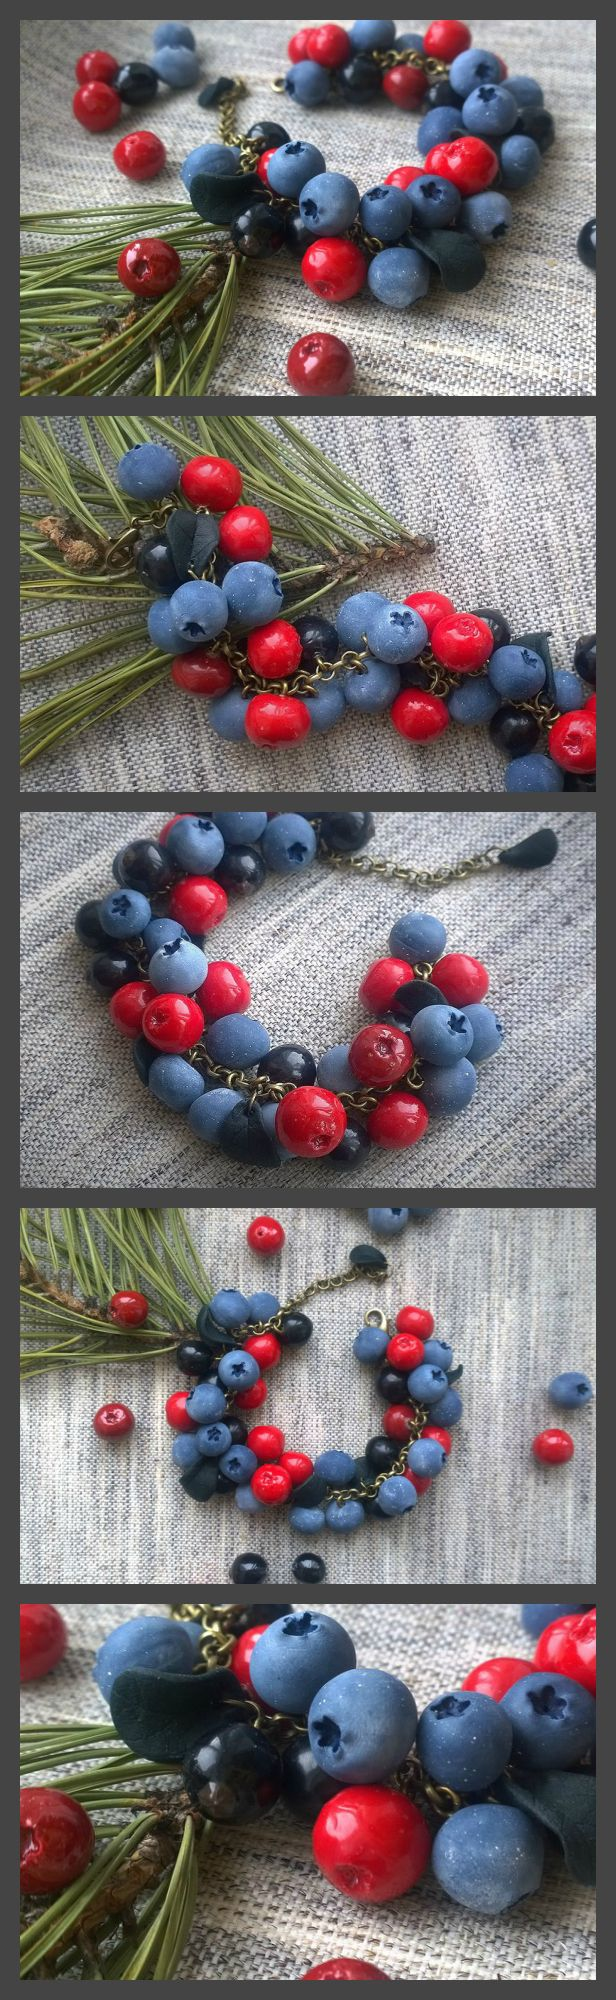 Bracelet with berries of blueberries, cranberries and black currant  - Blueberry - Cranberry - Polymer clay - Berry bracelet #berries #berry #polymerclay #blueberry #currant #blackcurrant #cranberry #lingonberry #forest #pine #blue #red #black #handmade #fimo #fimoclay #clayberry #premo #sculpey #bracelet #etsy #instajewelry